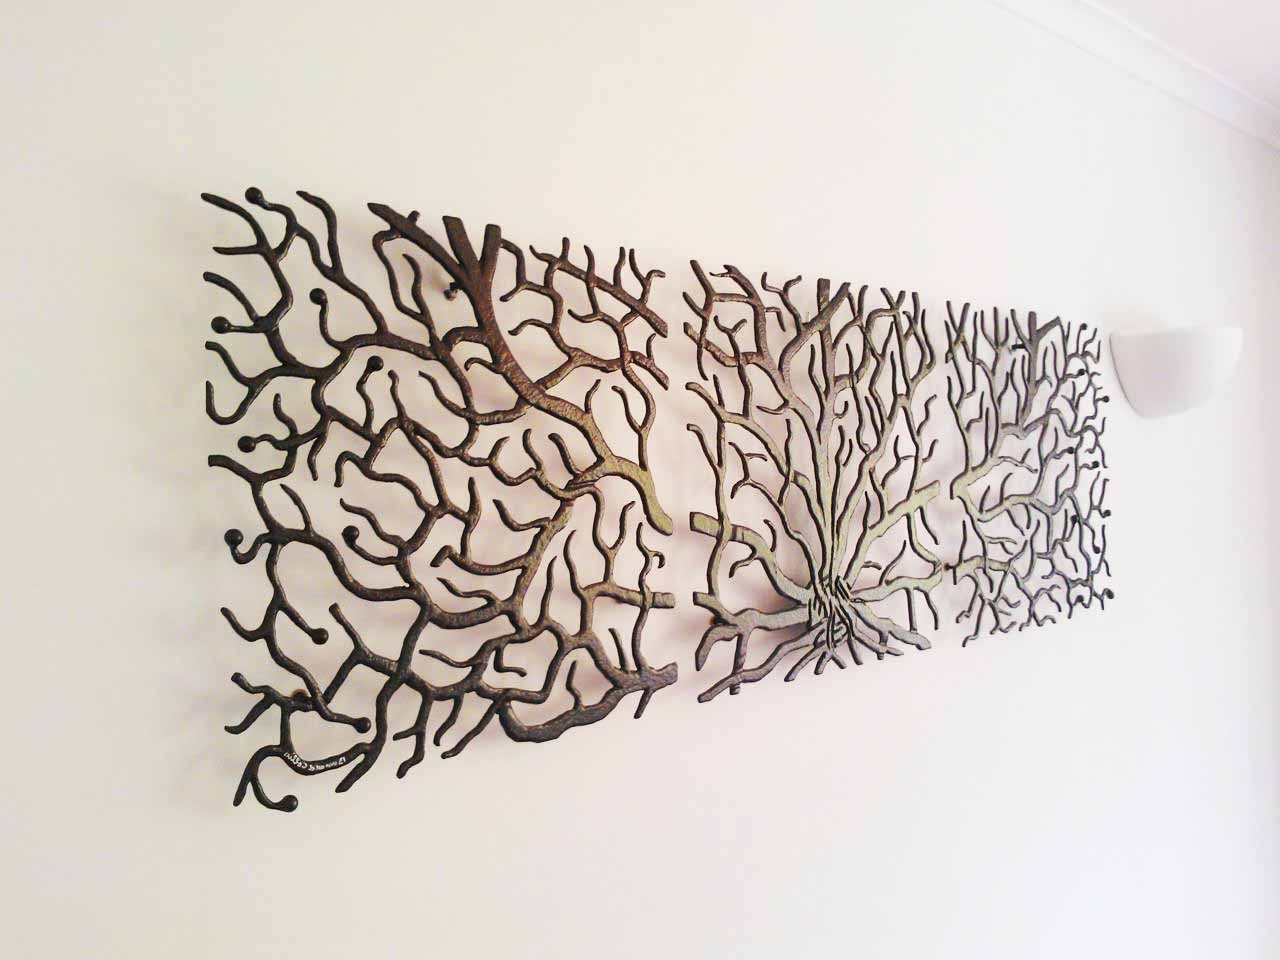 Wall Art Designs Coral Wall Art Magnificent Metal Tree Wall Art Within Most Recently Released Metal Wall Art For Bathroom (View 13 of 15)